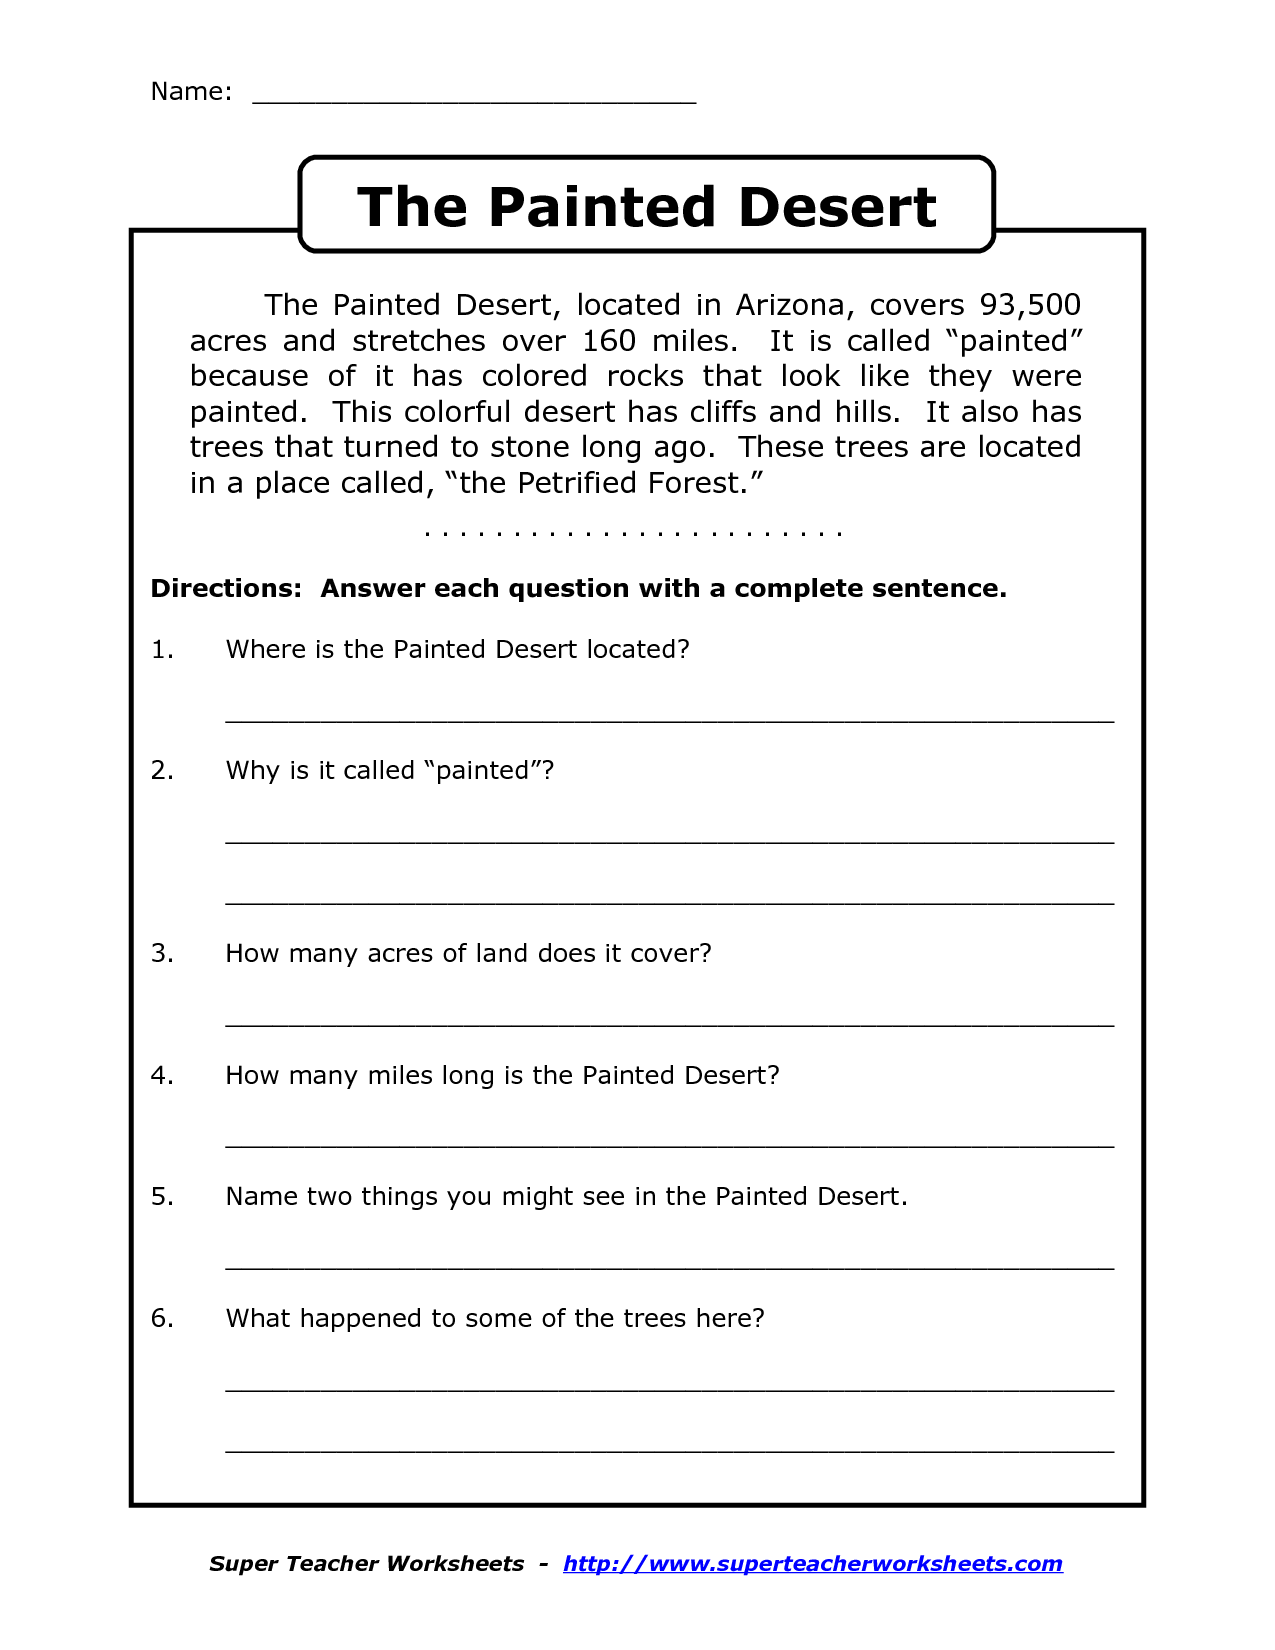 Worksheet Reading Exercise For Grade 1 reading comprehension exercises for grade 1 memarchoapraga